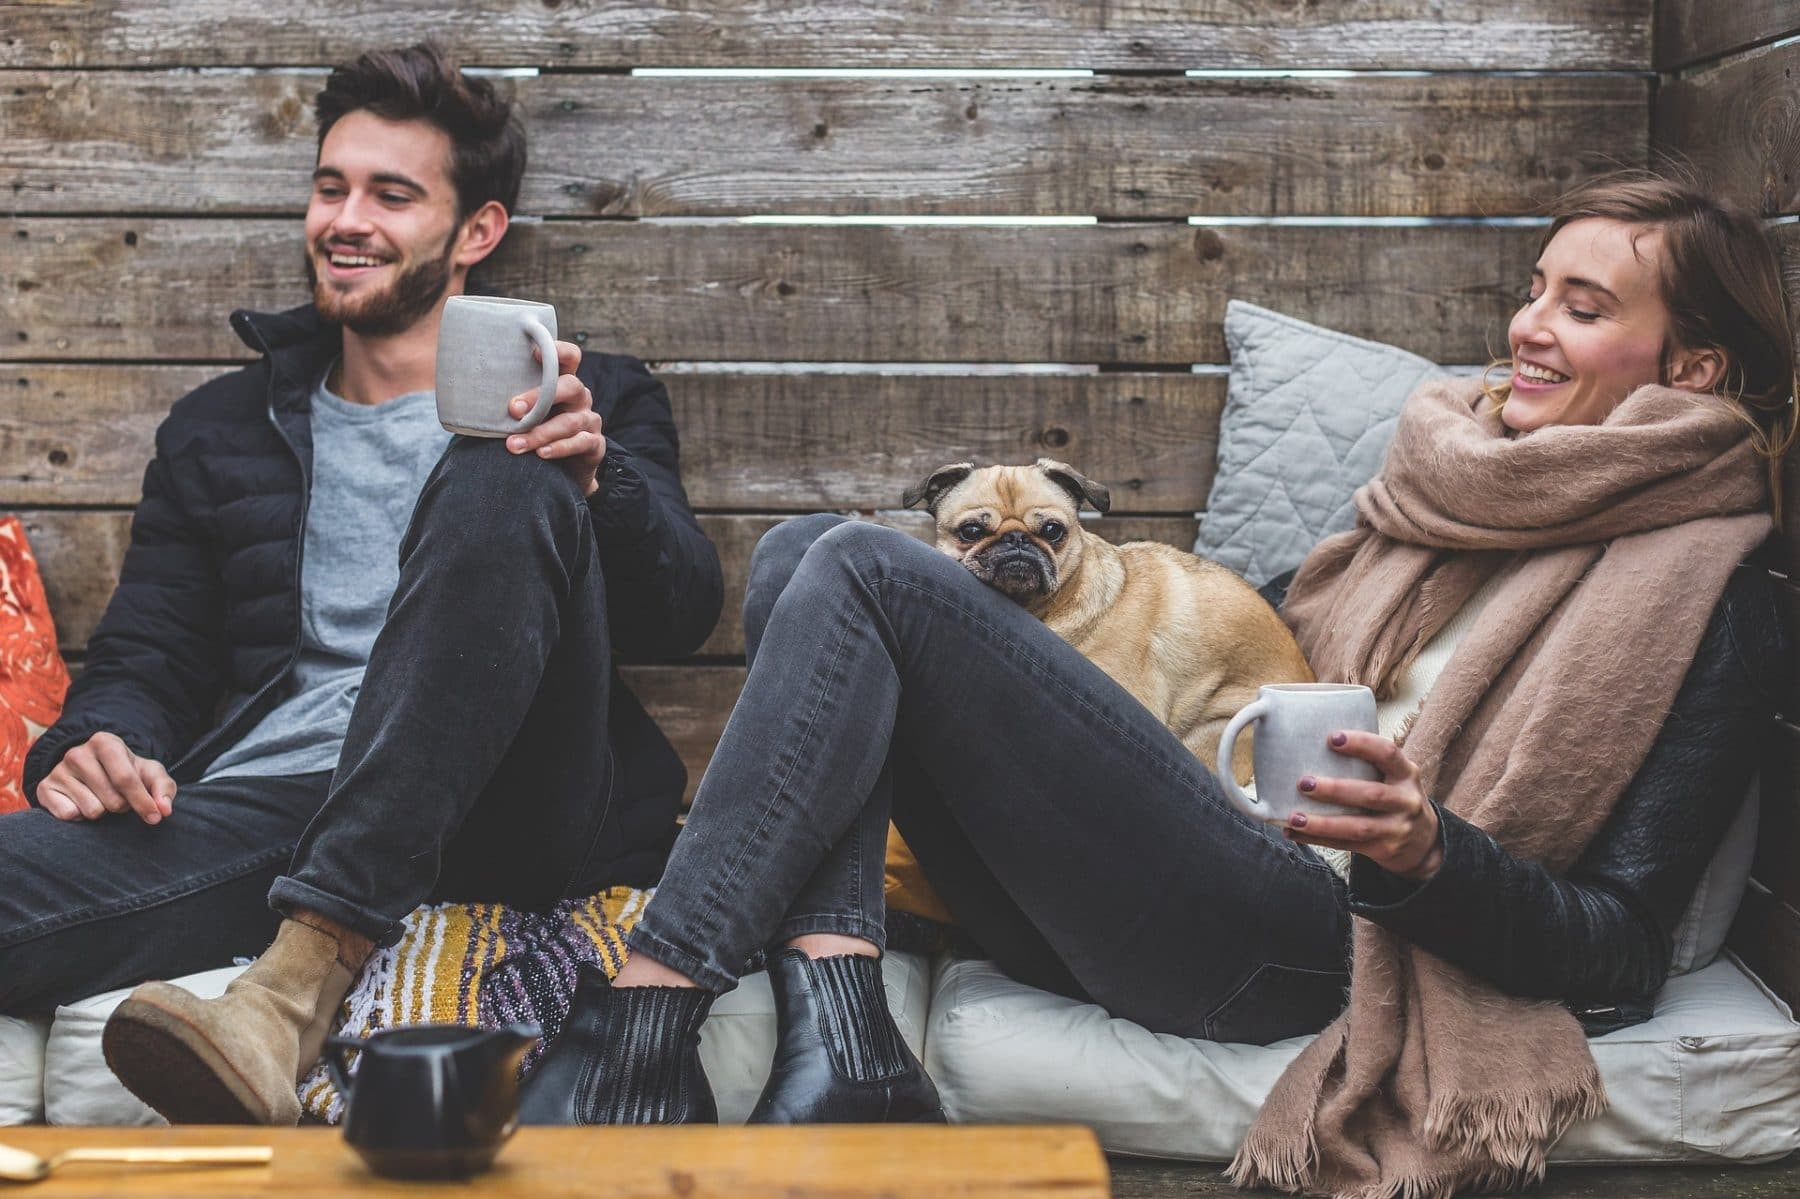 A man and woman enjoying coffee outdoors. A Pug sits on the woman's lap.